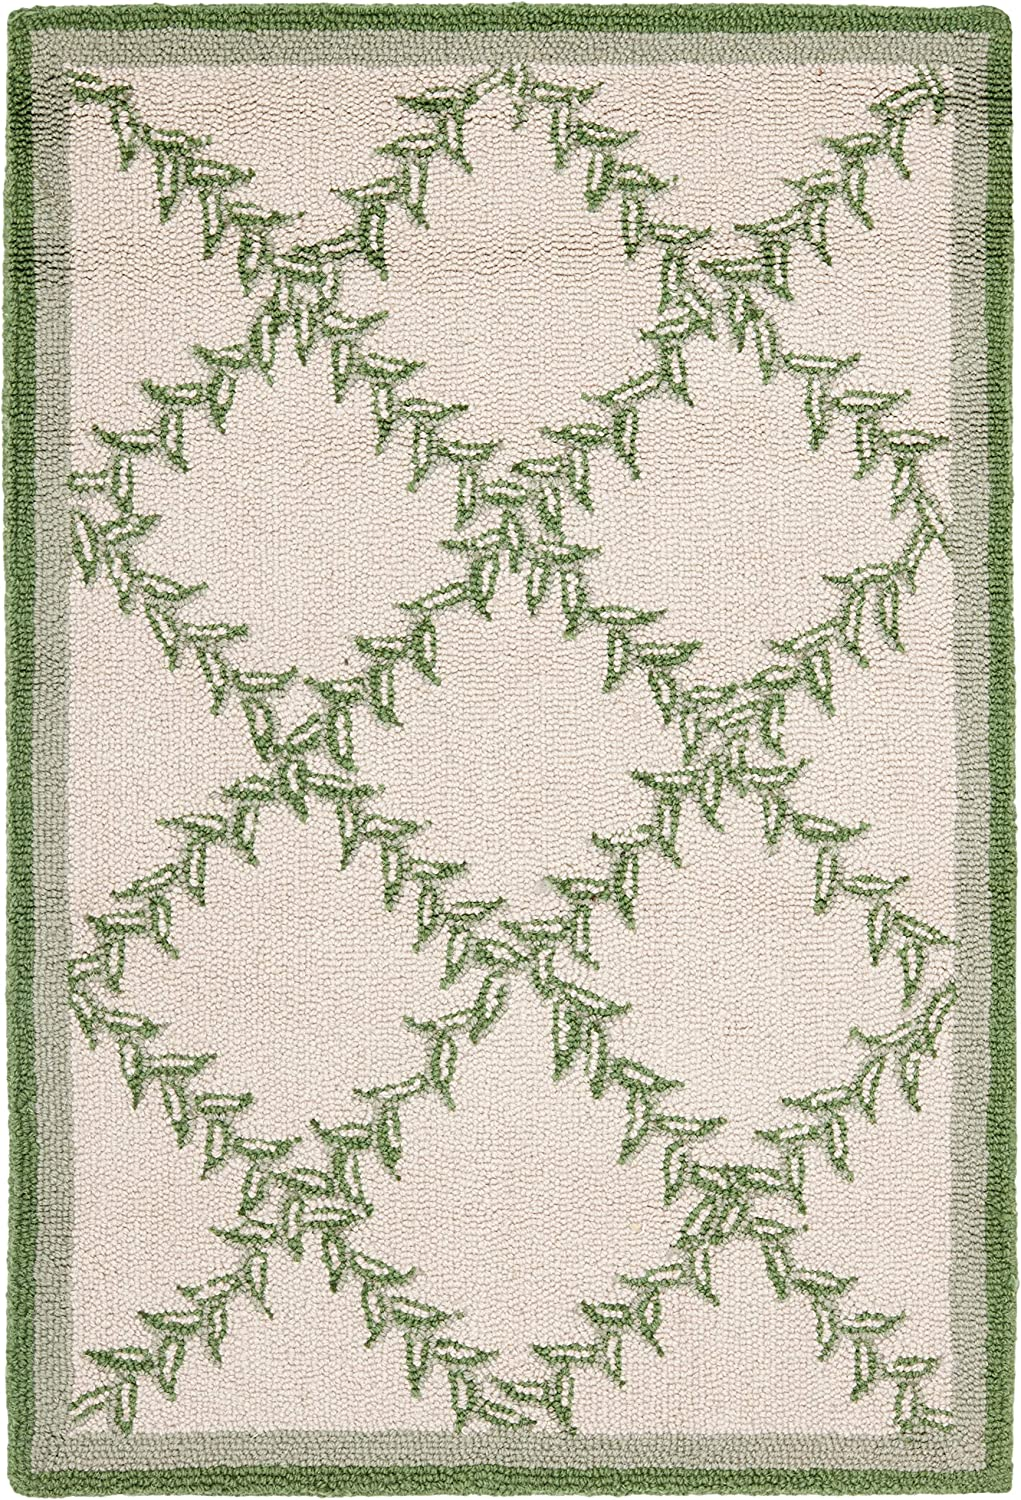 Safavieh Chelsea Collection HK230B Hand-Hooked Ivory and Light Green Premium Wool Area Rug (1'8